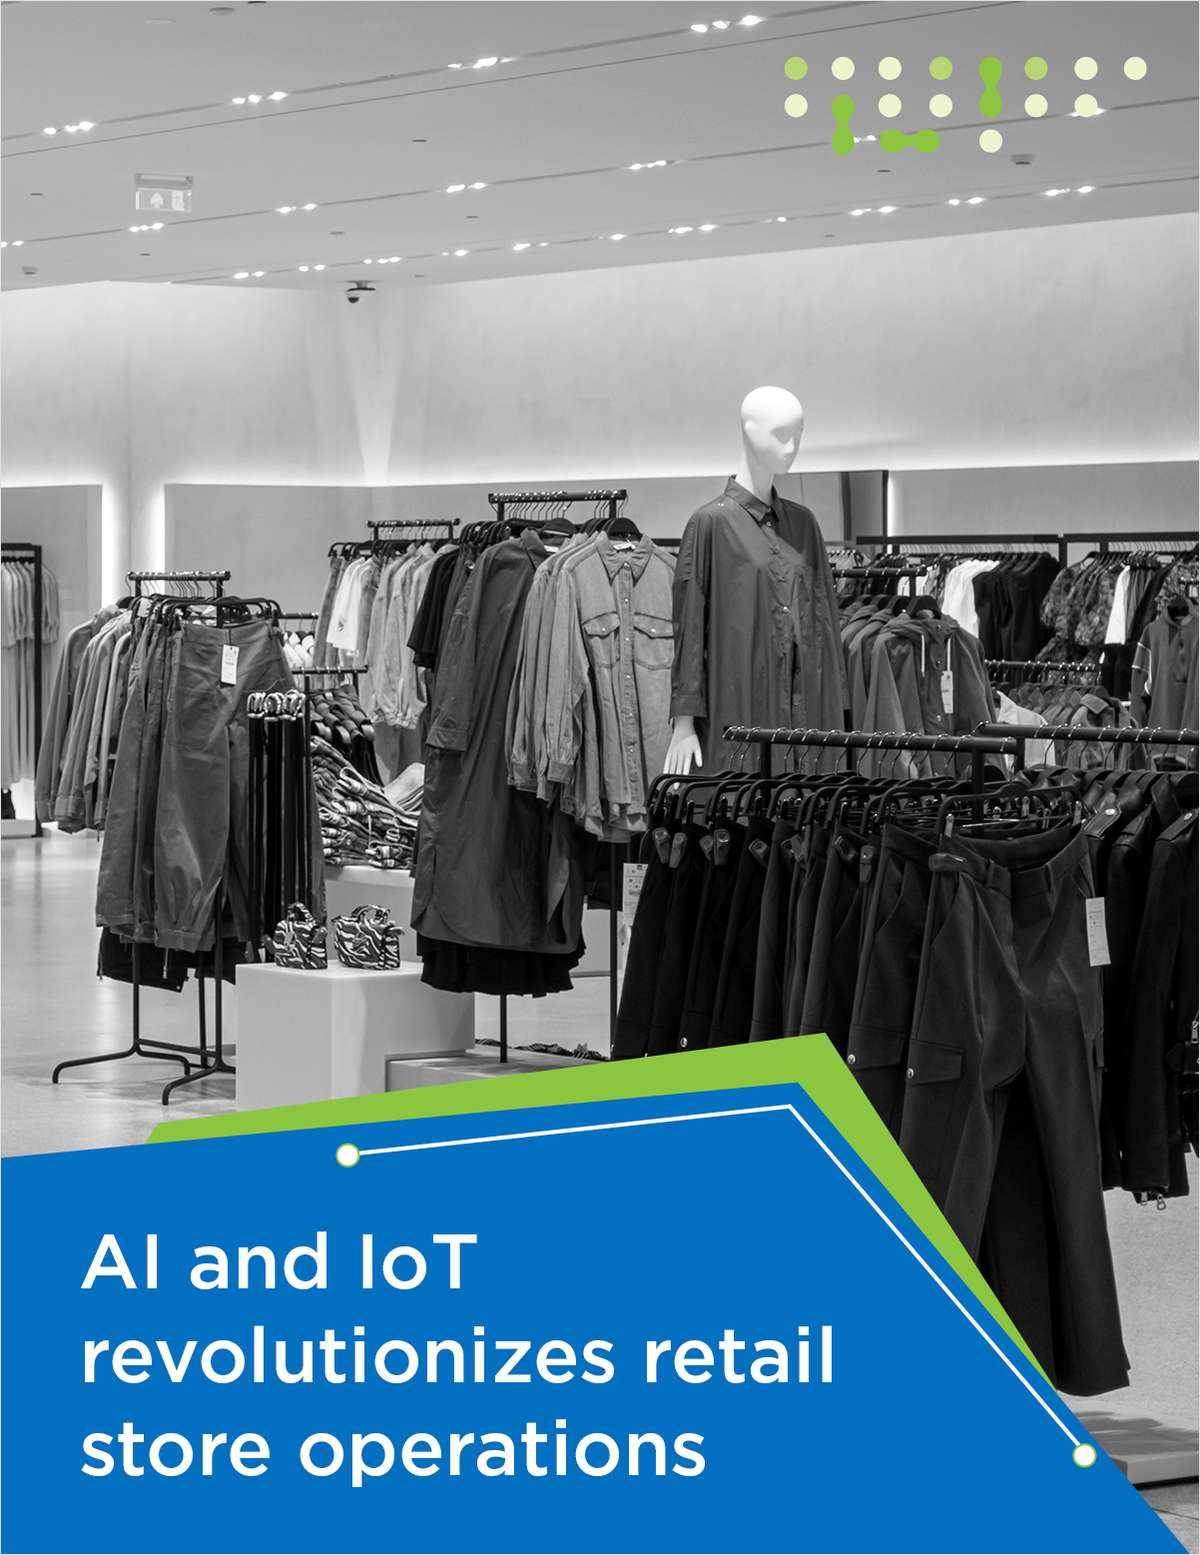 A success story of applying AI and IoT enabled remote services for retail store operations